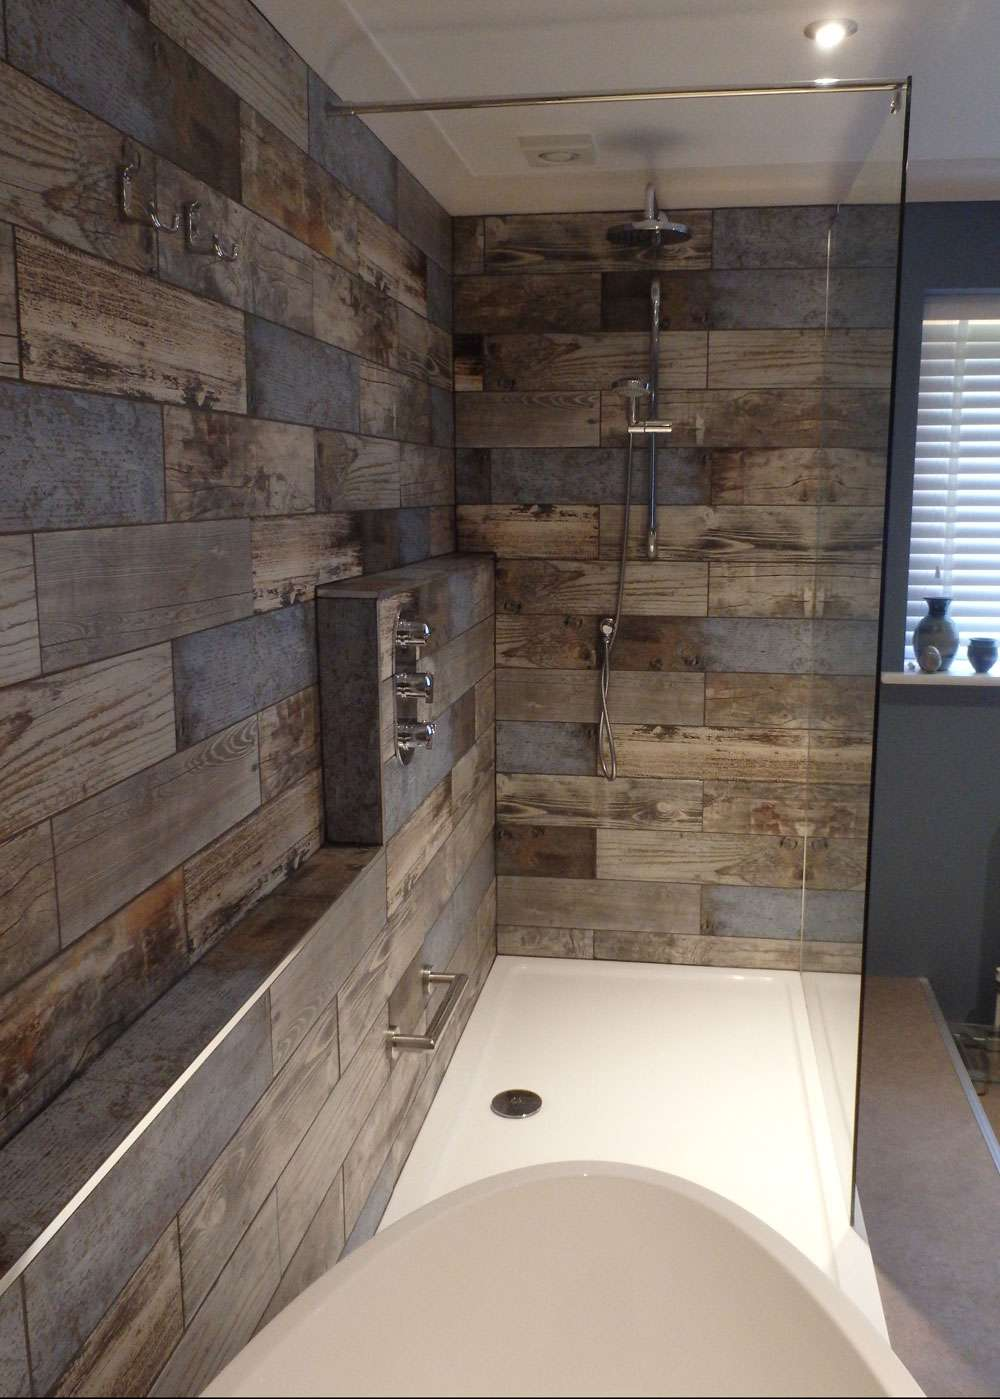 Reclaimed wood rachel 39 s bathroom transformation walls and floors walls and floors Bathroom ideas wooden floor